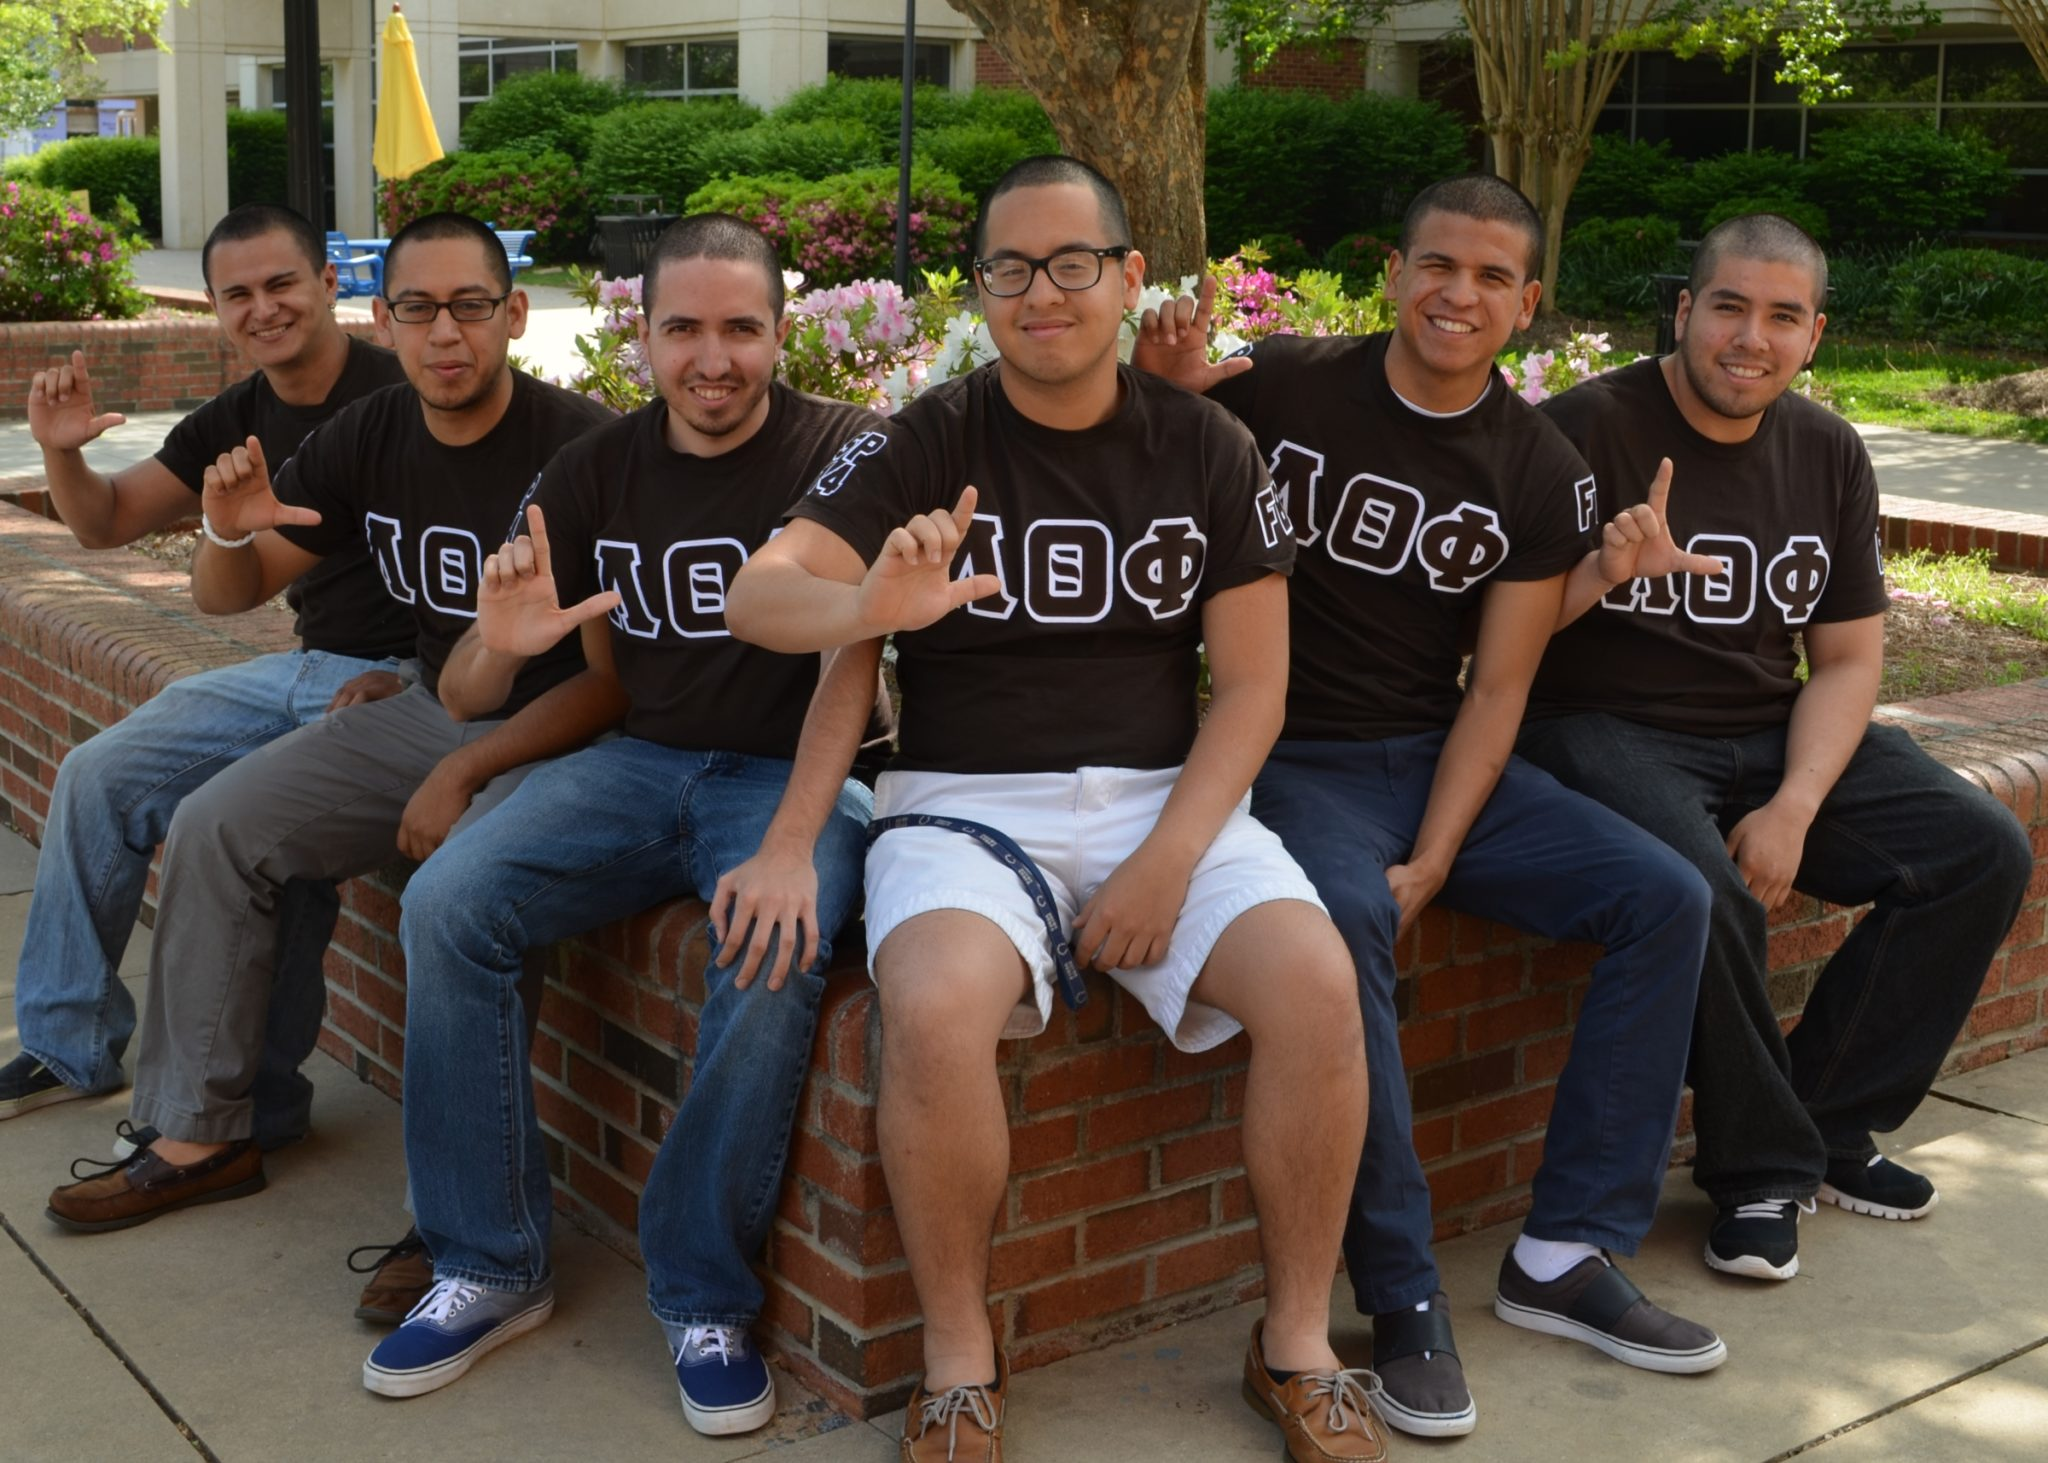 L-R are JCSU students and founders of the Lambda Theta Phi Latin Fraternity, Inc.: Omar Cossio, Yerisson Cardenas,  Francisco Cerrillo, Sergio Montesdeoca,  Luis Bryan Dominguez, Juan Carlos Hernandez Campillo